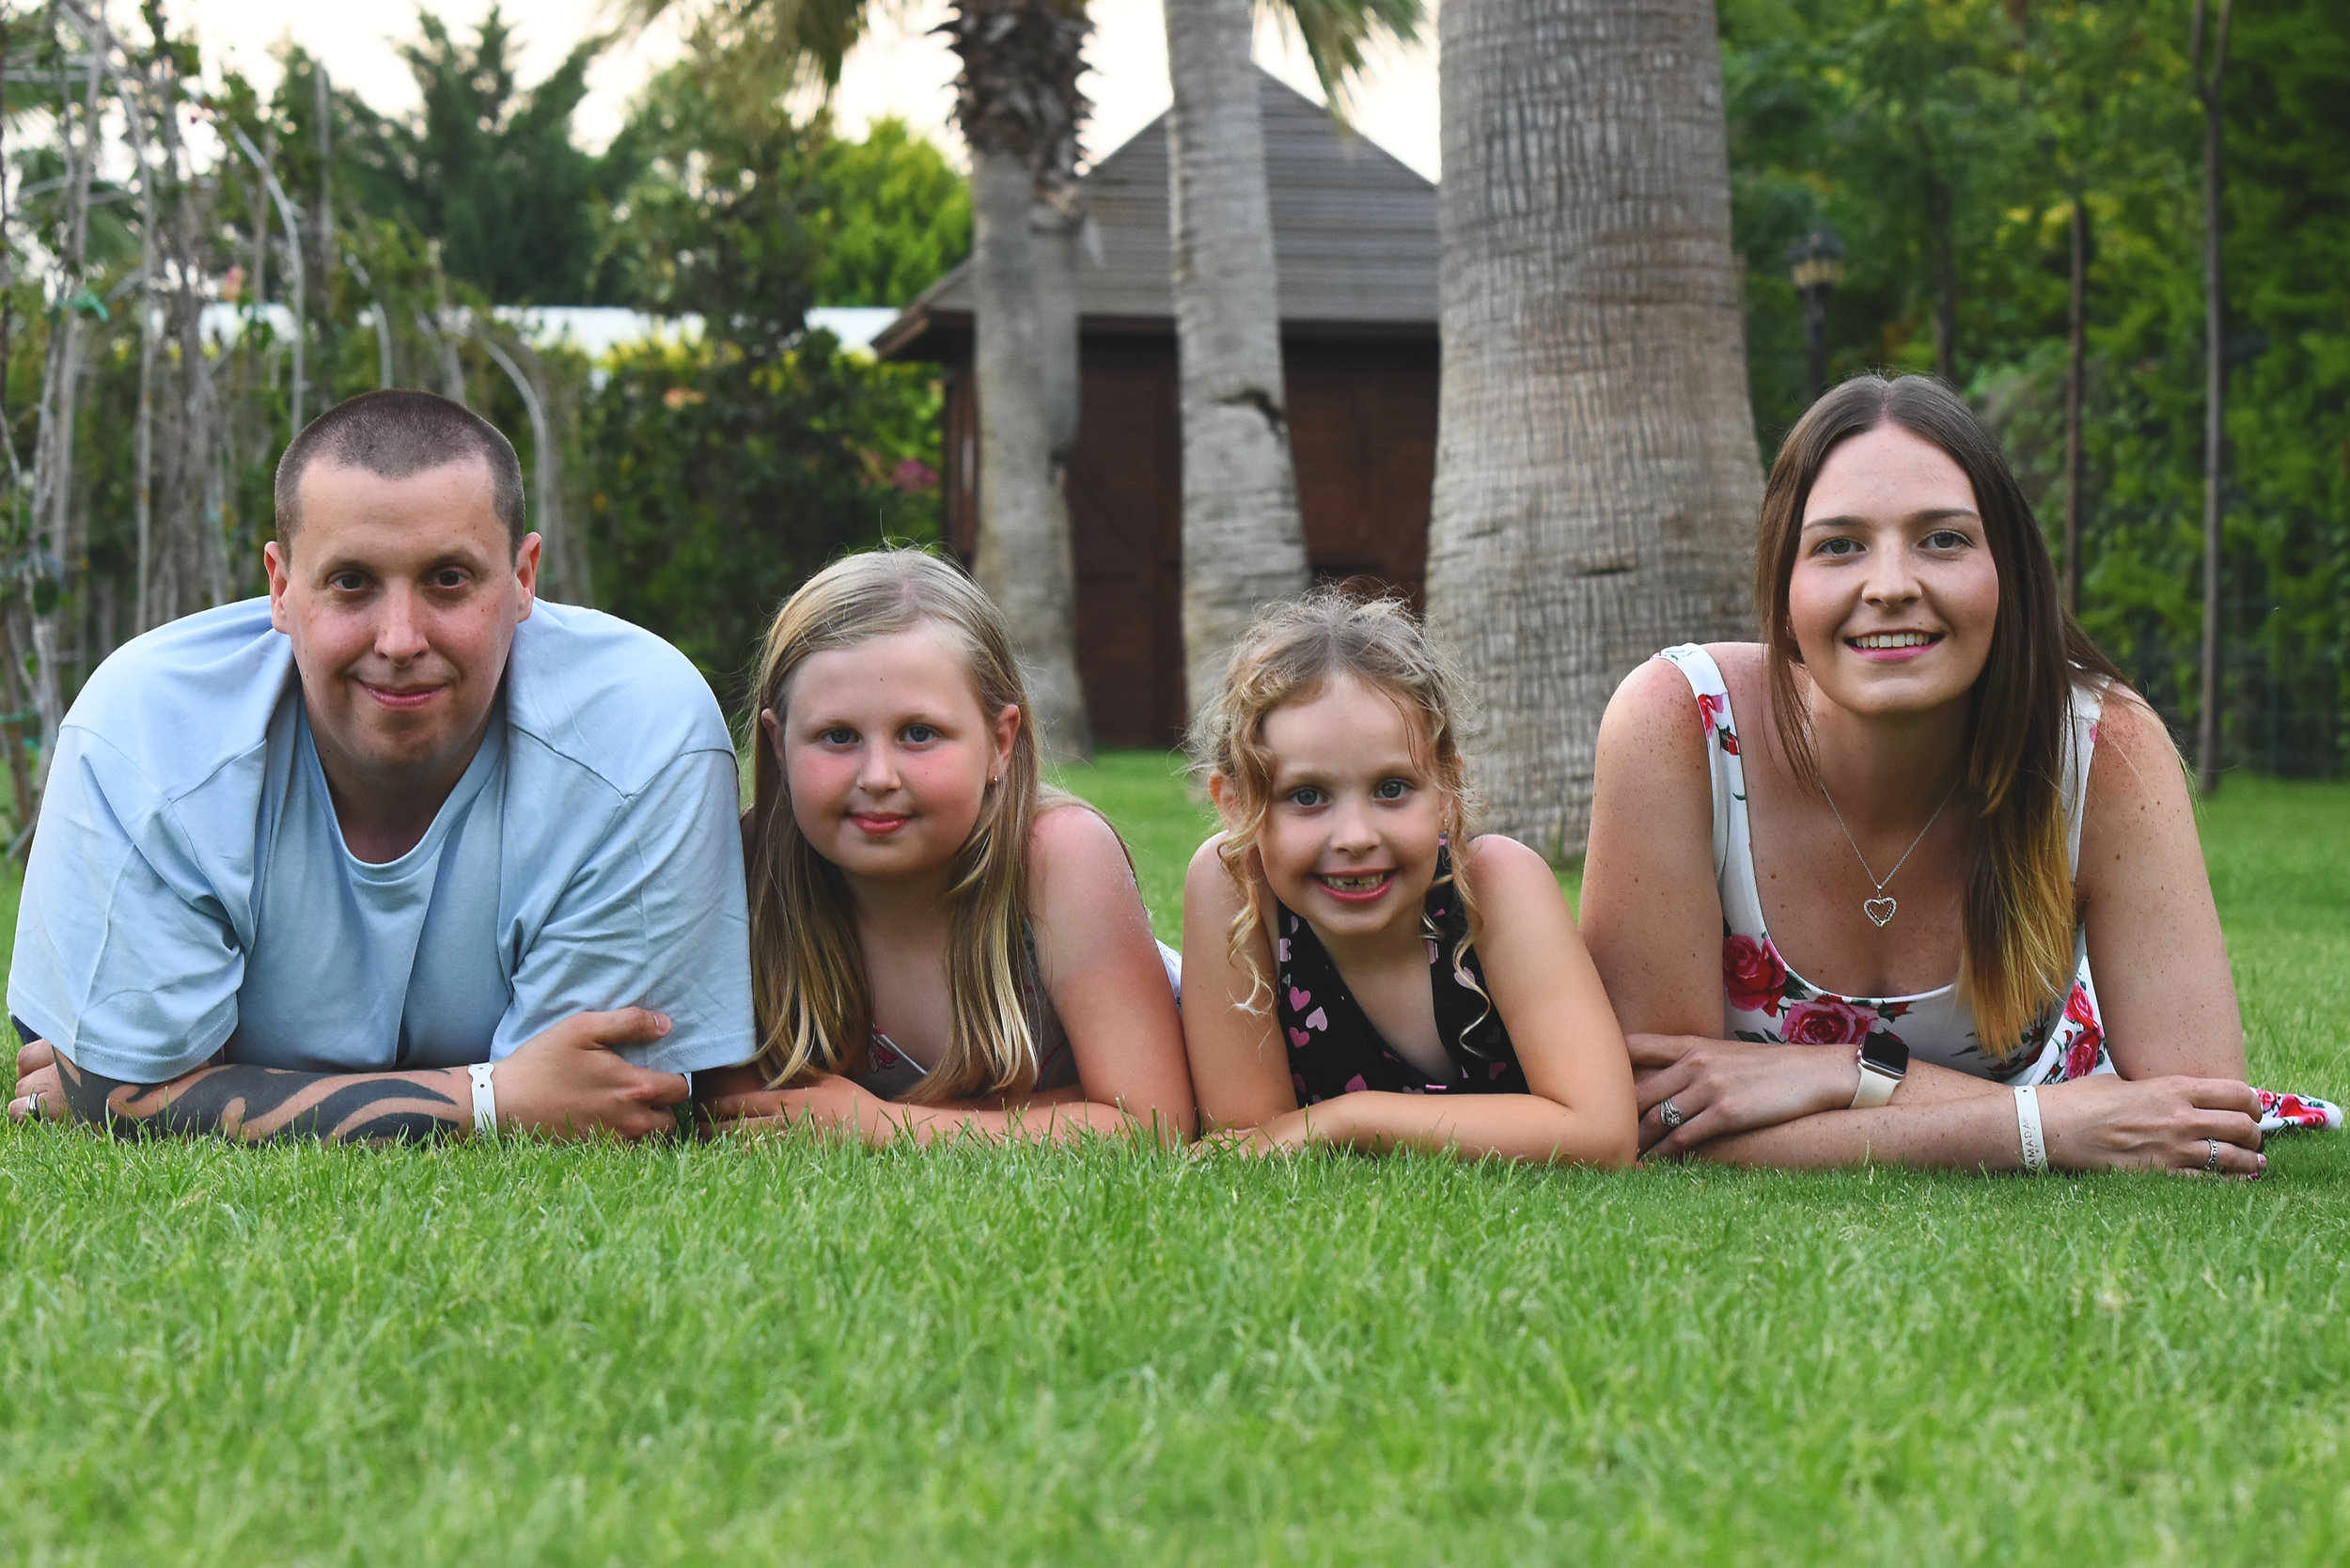 Myself, my wife Vicky and my daughters Keeley and Lacey on a recent family holiday